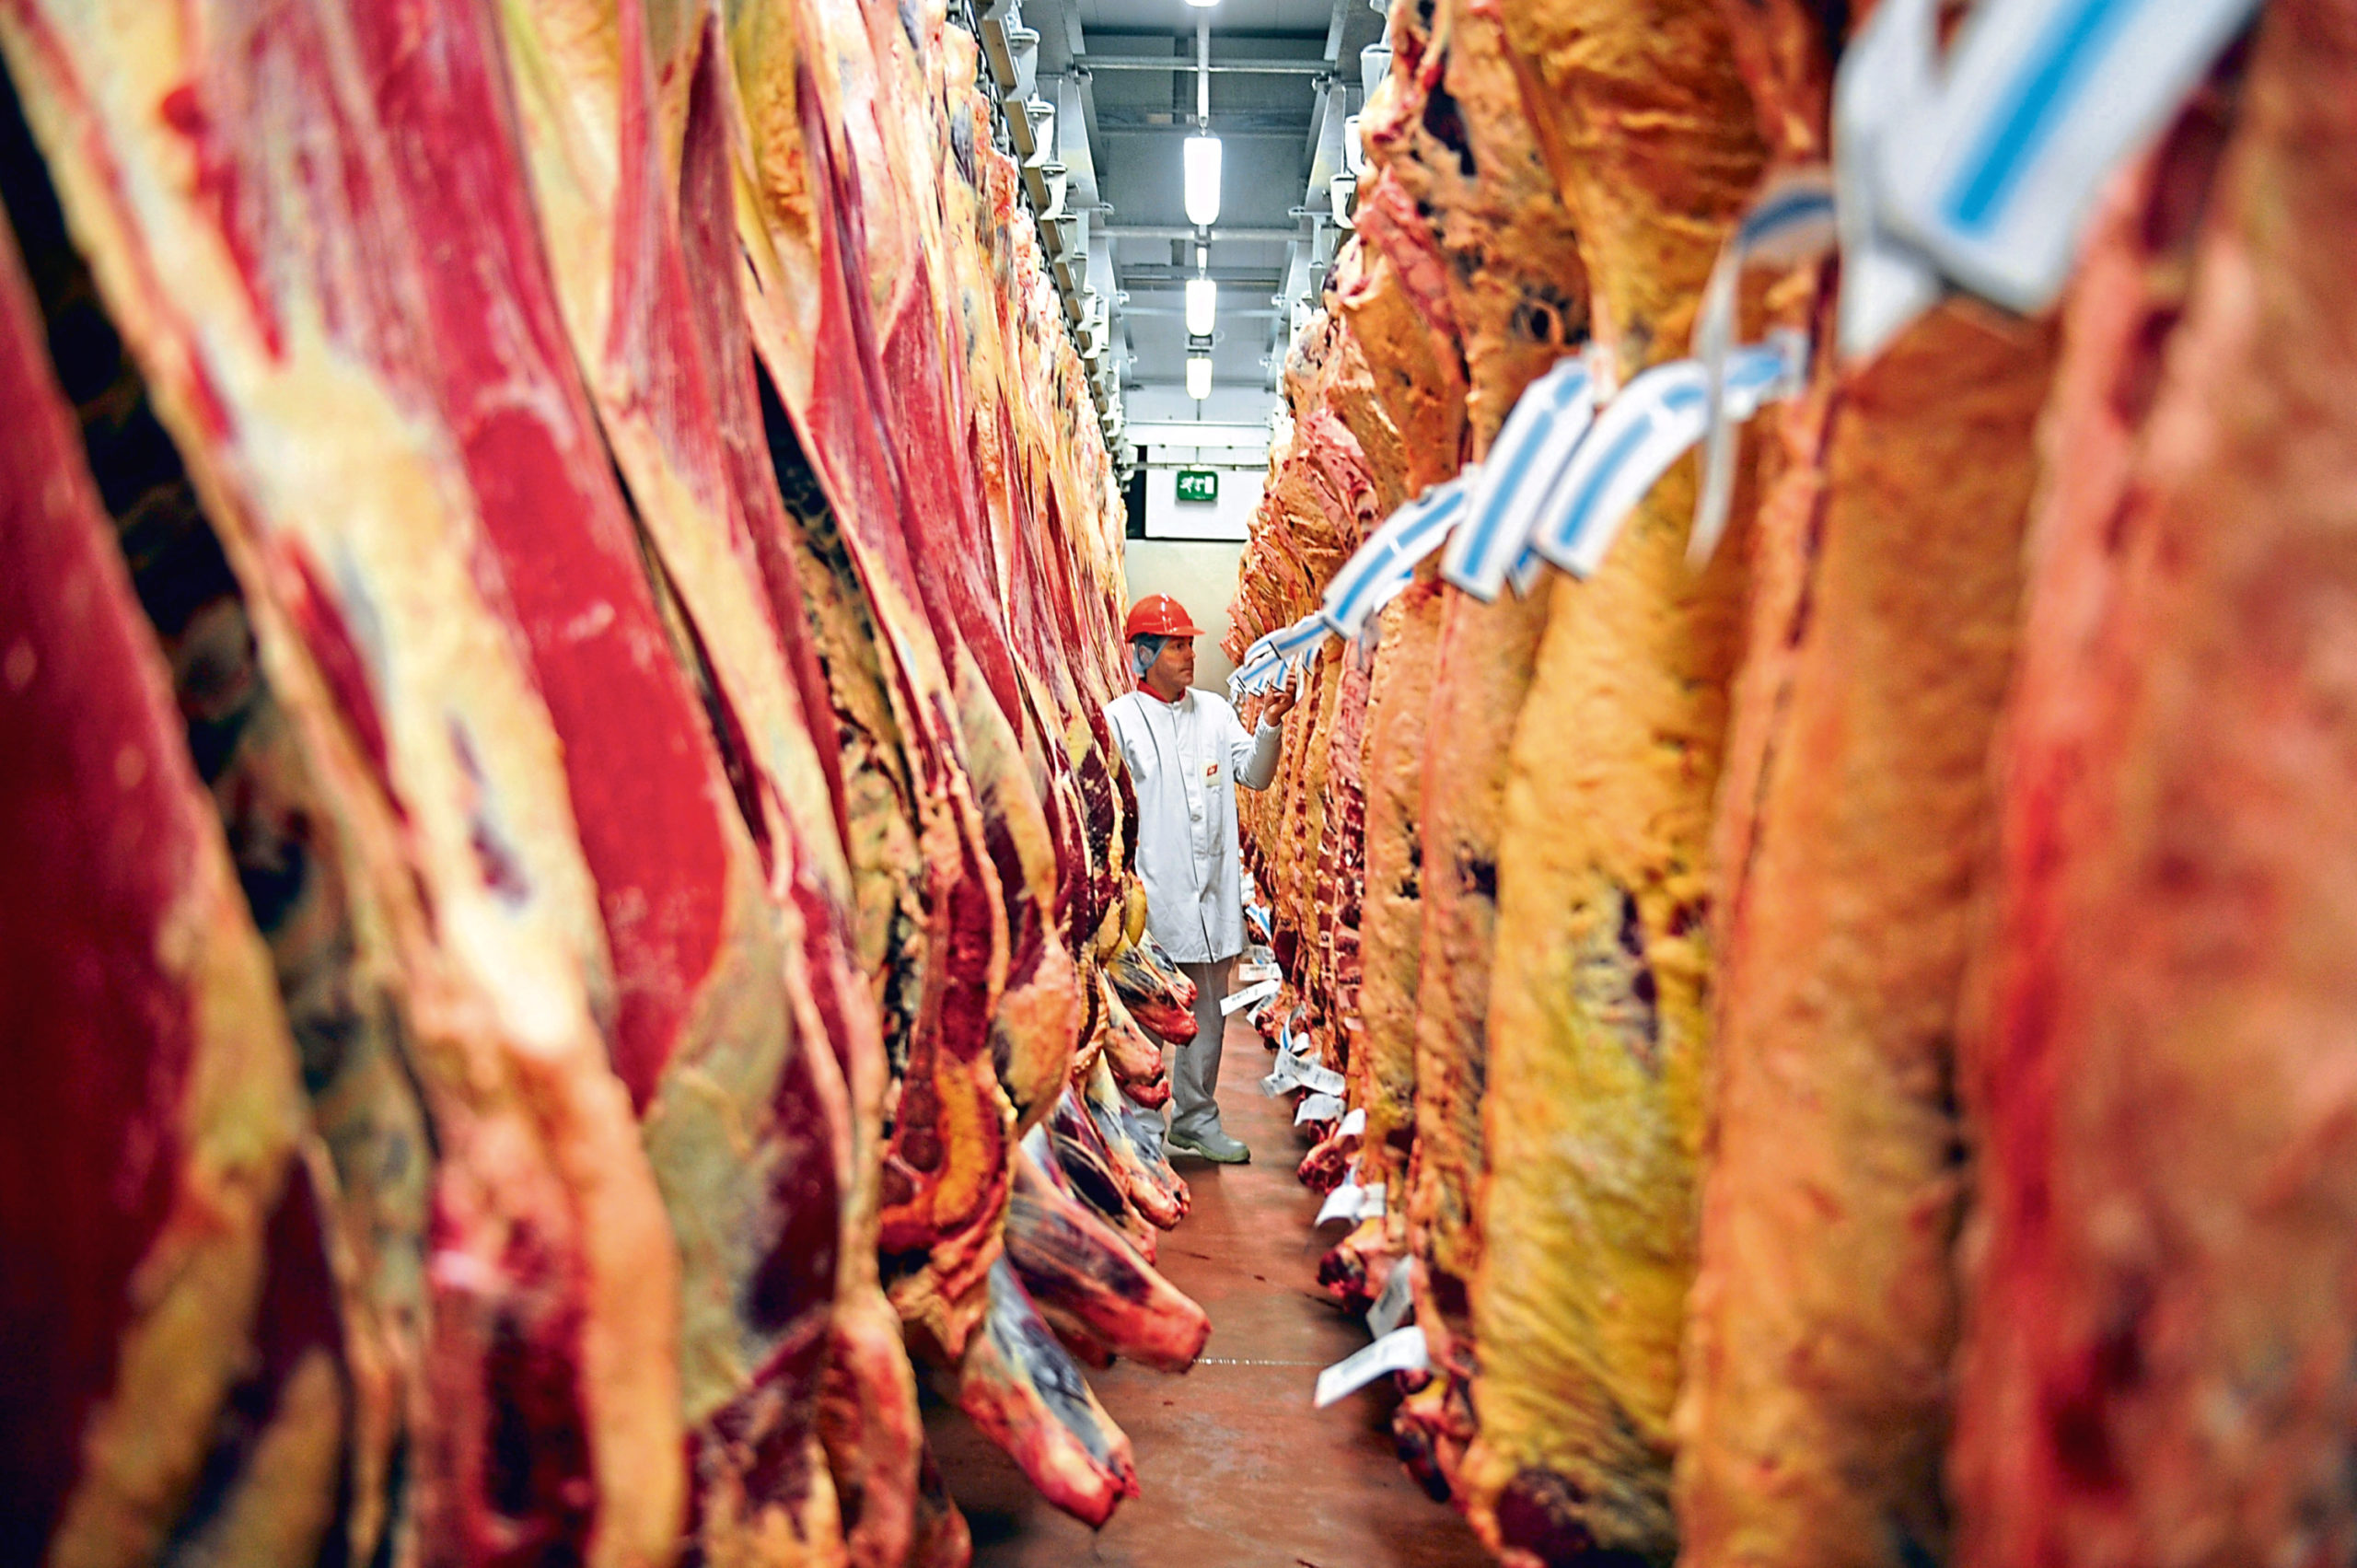 Abattoirs are continuing to operate in line with the latest health guidance.